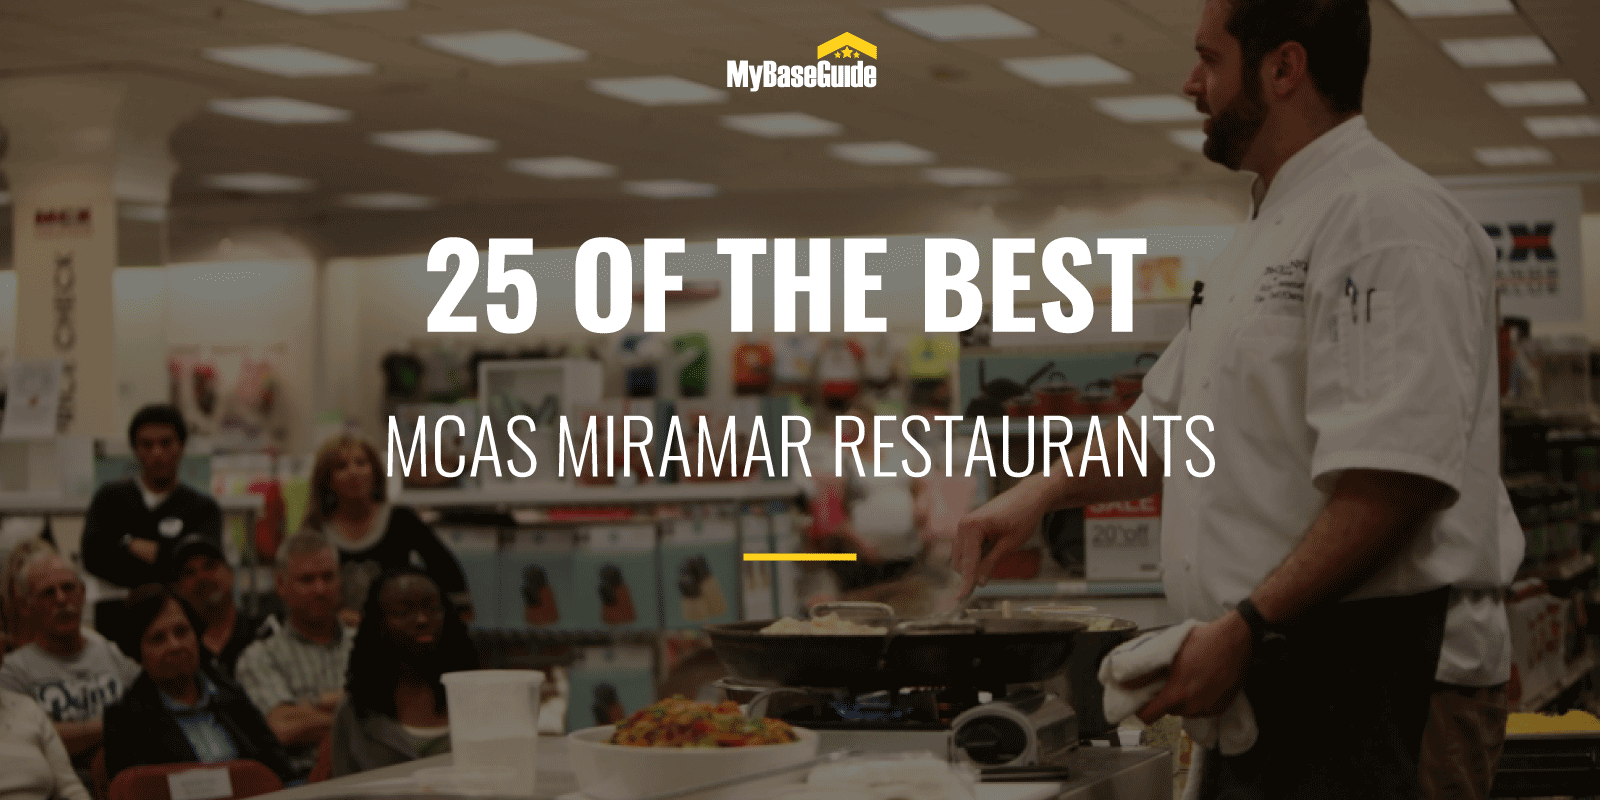 25 of the Best MCAS Miramar Restaurants